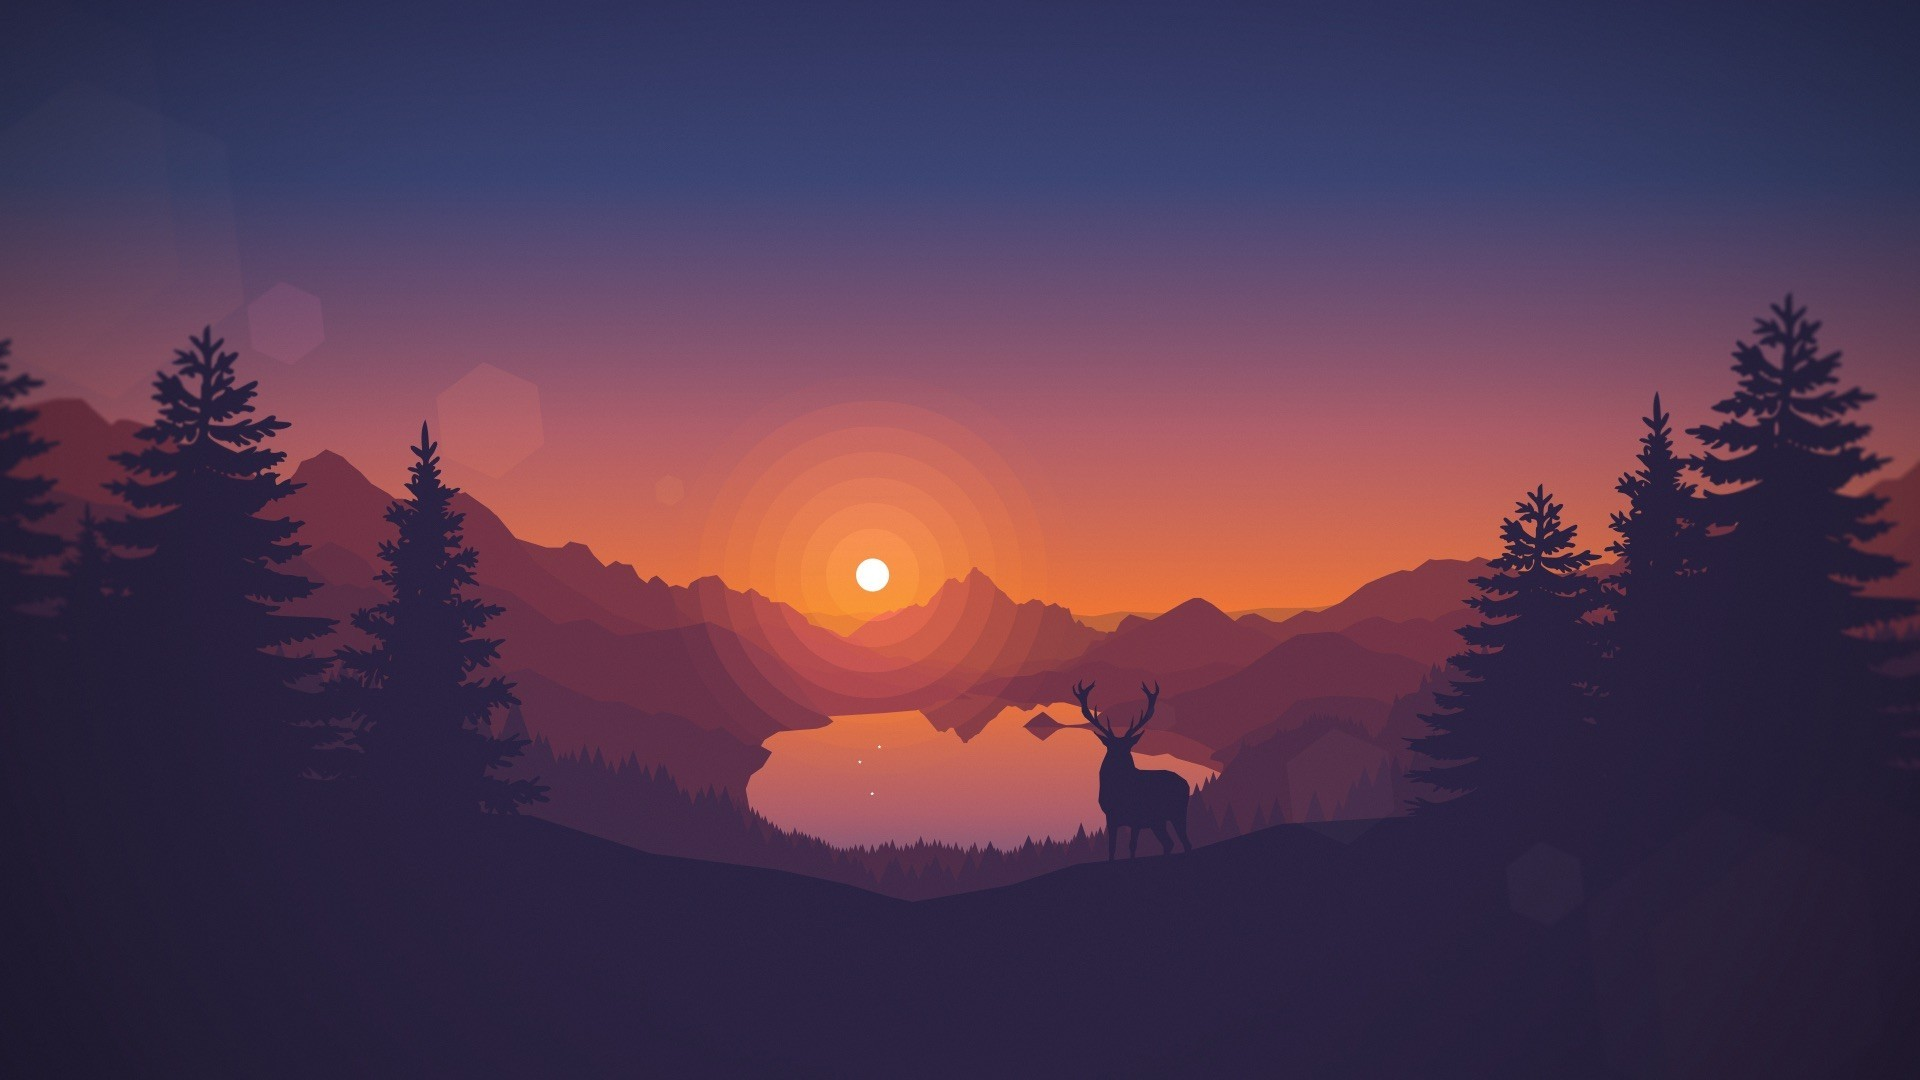 whitetail deer backgrounds 183��